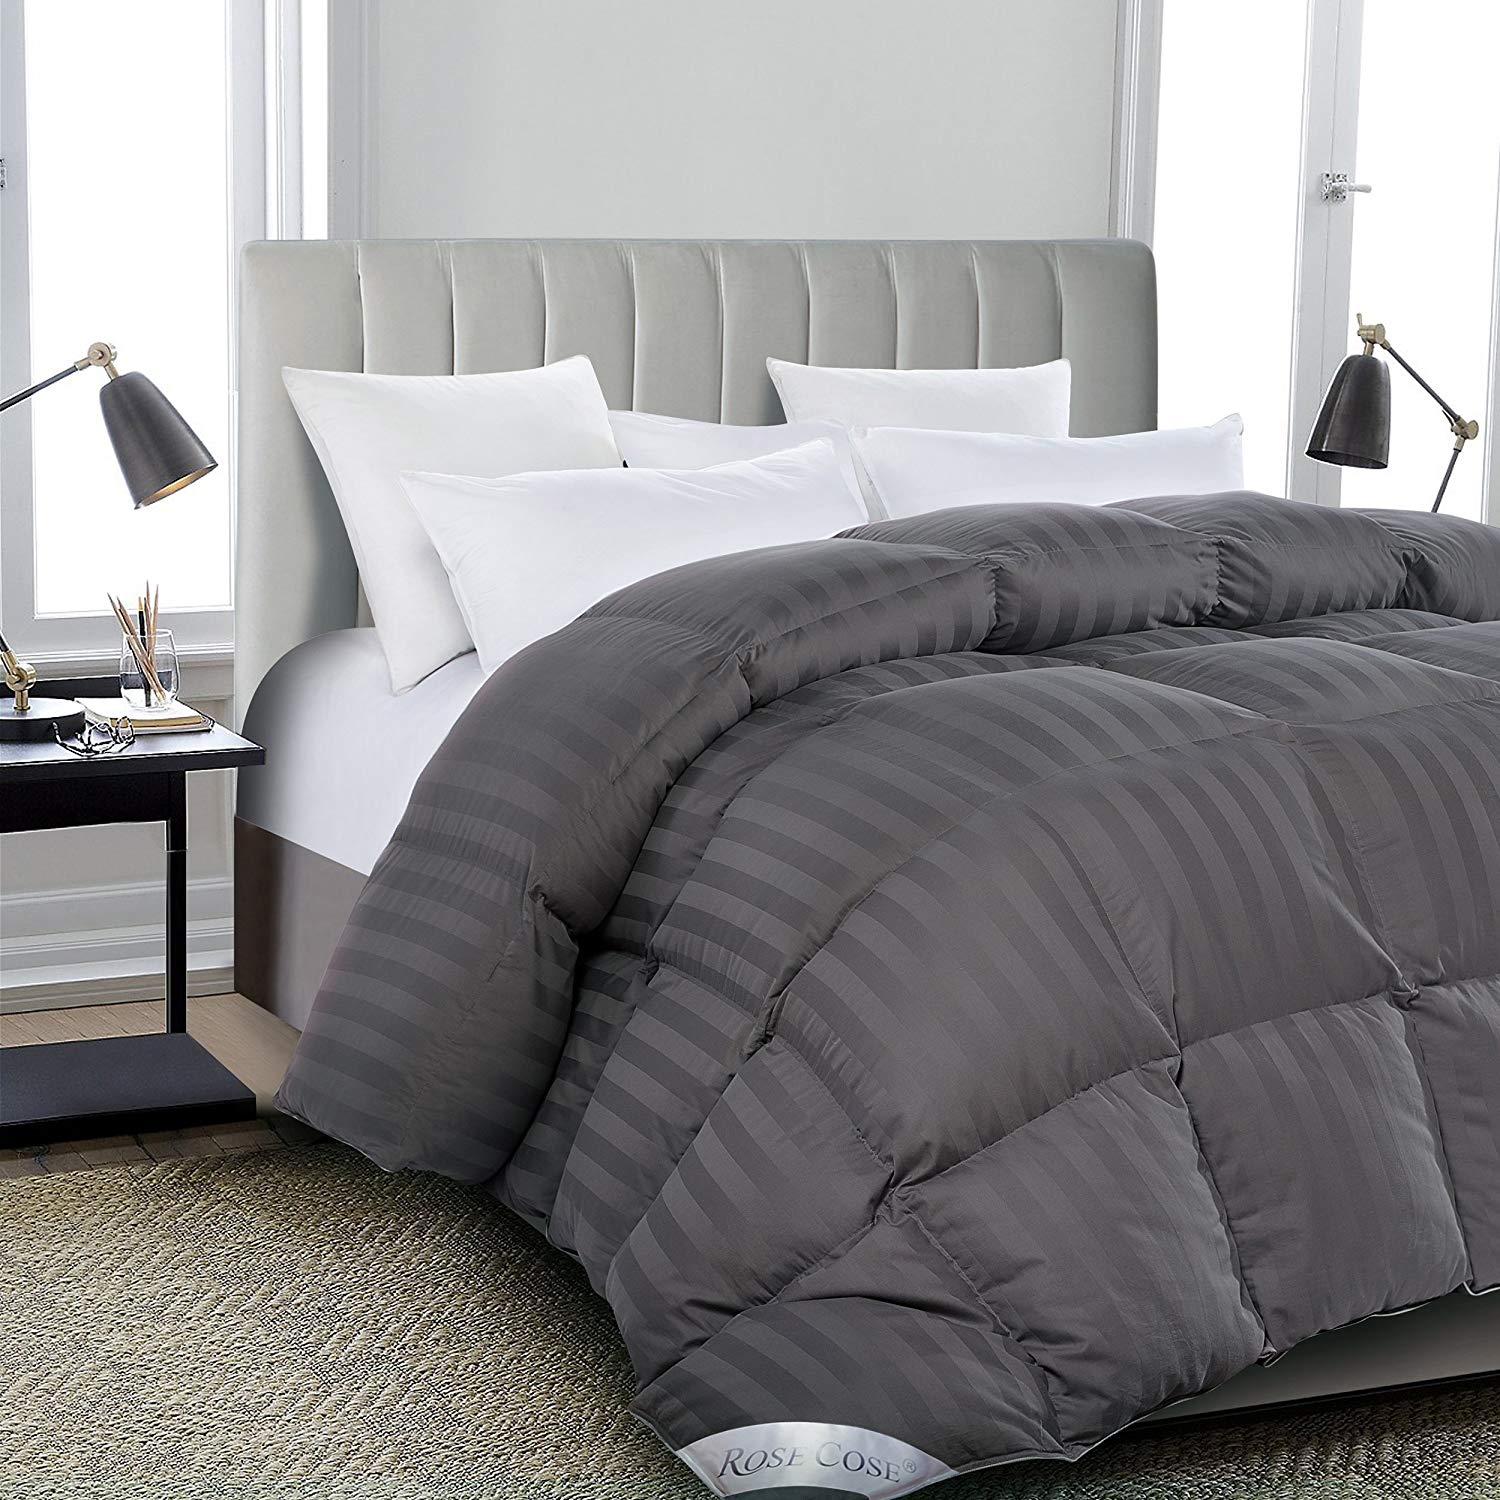 ROSECOSE Lightweight Comforter Review by www.snoremagazine.com